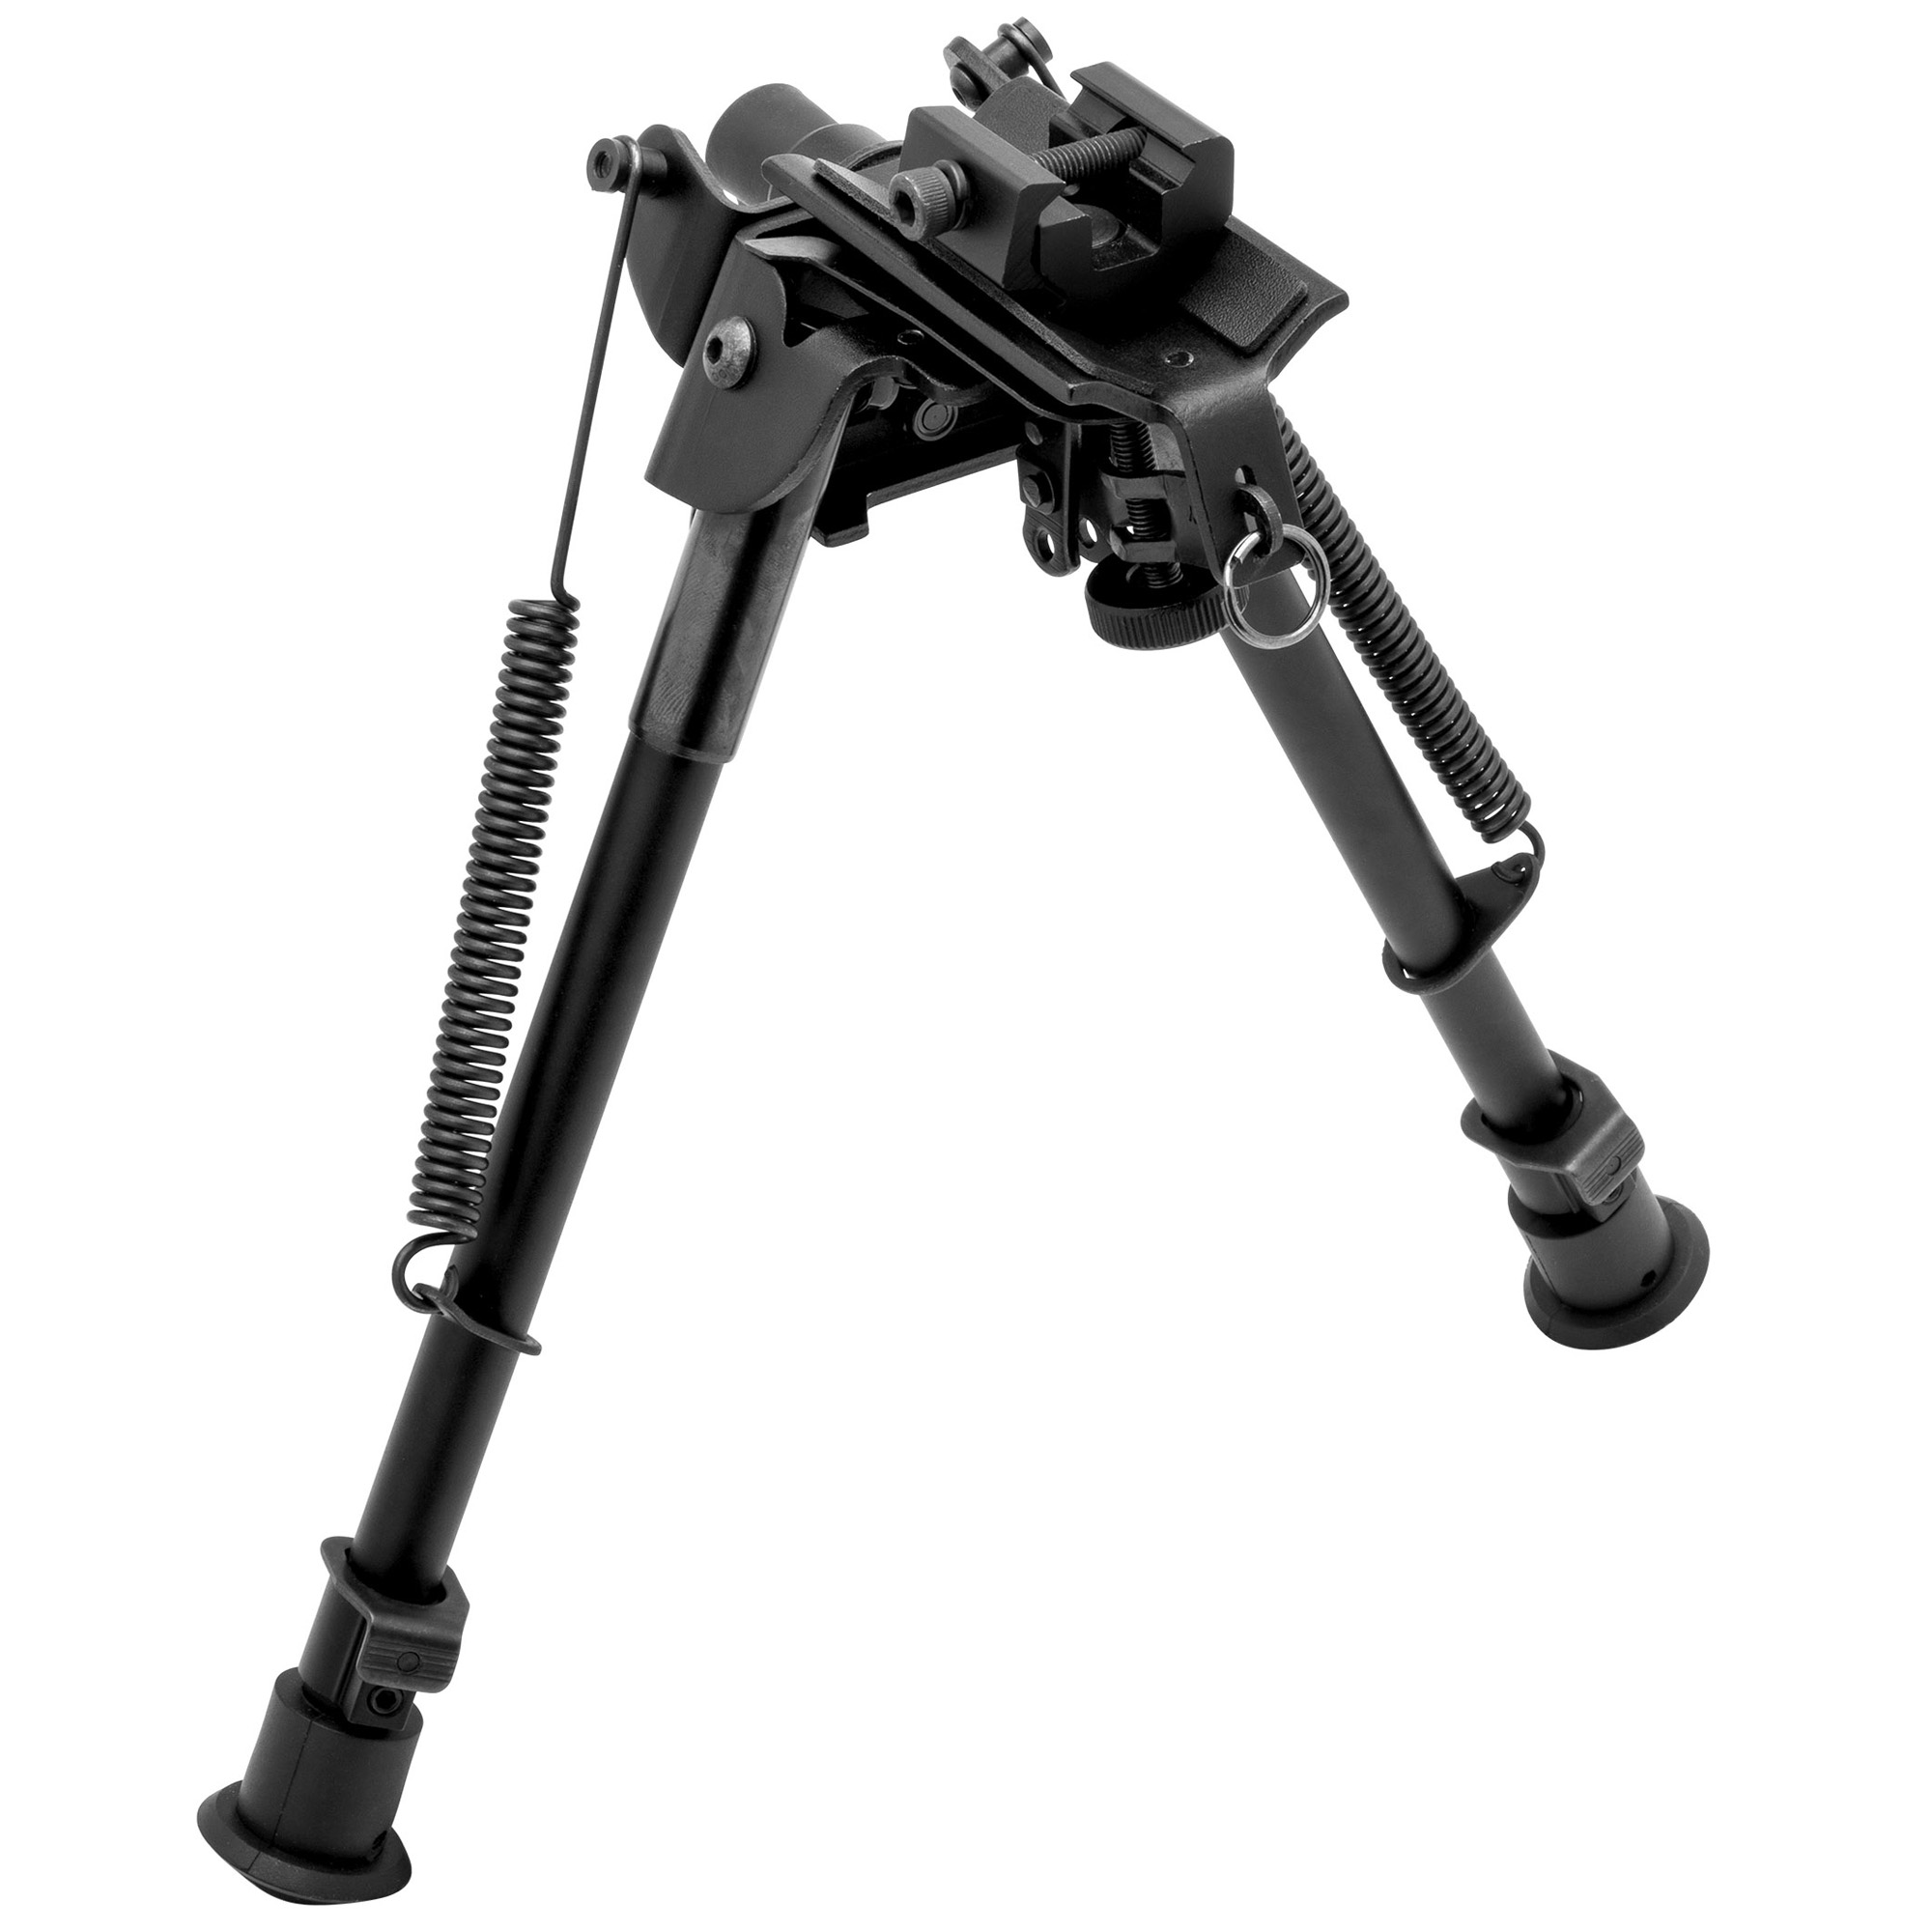 """This TAC POD adjustable bipod mounts to a sling swivel stud or a picatinny rail. It is lightweight and compact with quick deployment. It has a spring-assisted design and its pivoting base offers precision leveling on uneven surfaces. It includes a sling stud adapter that can be used without bipod for additional sling mounting options. Adjusts 9""""-13""""."""